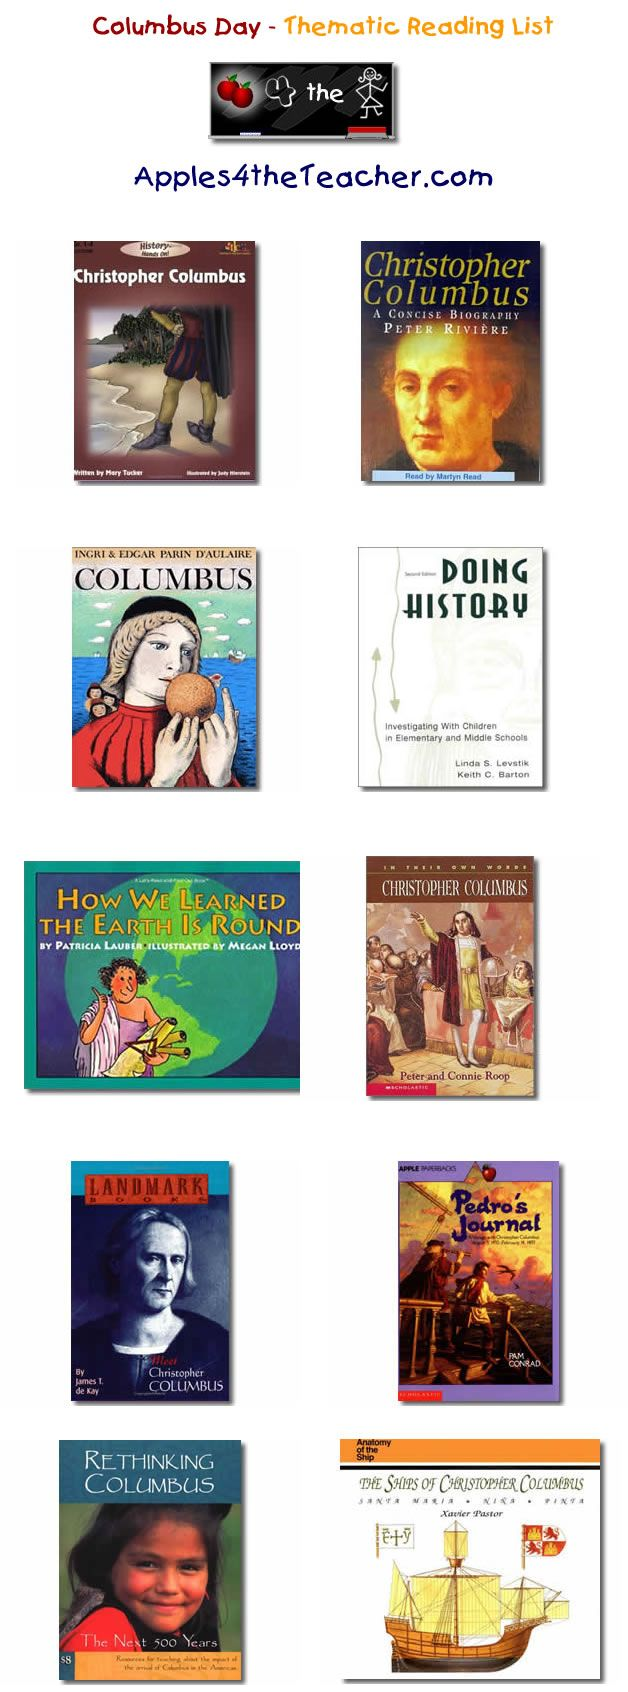 Suggested Thematic Reading List For Columbus Day Columbus Day Books For Kids Children S Literature Best Children Books Columbus Day